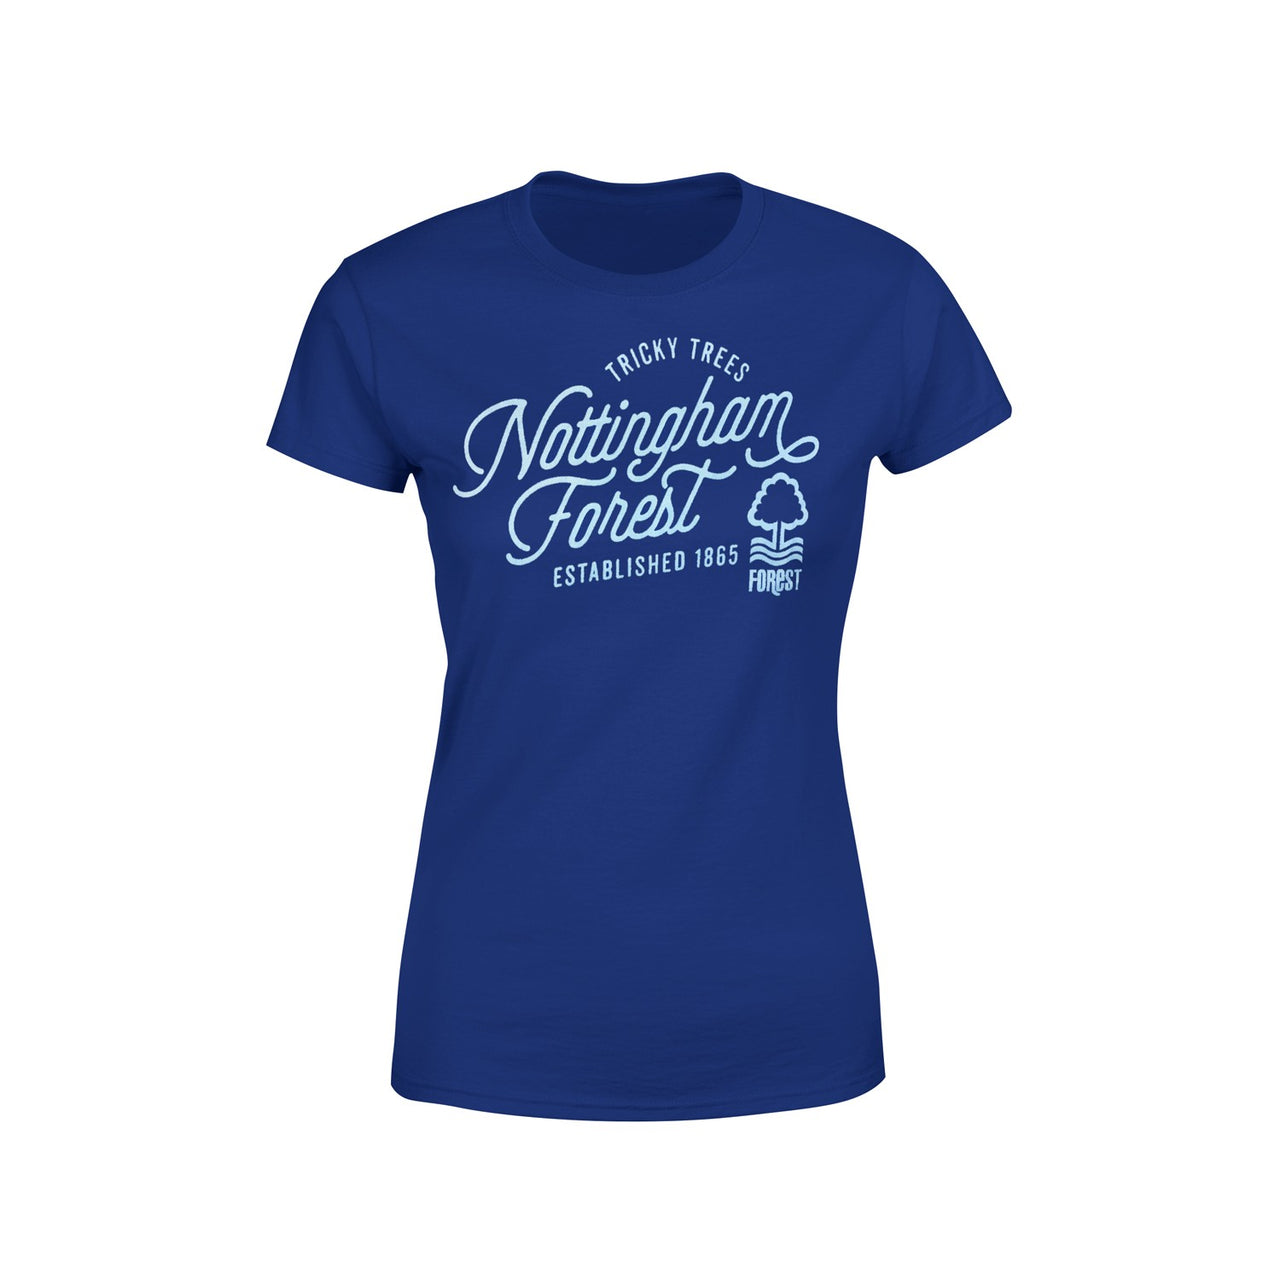 NFFC Womens Midnight Blue T-Shirt